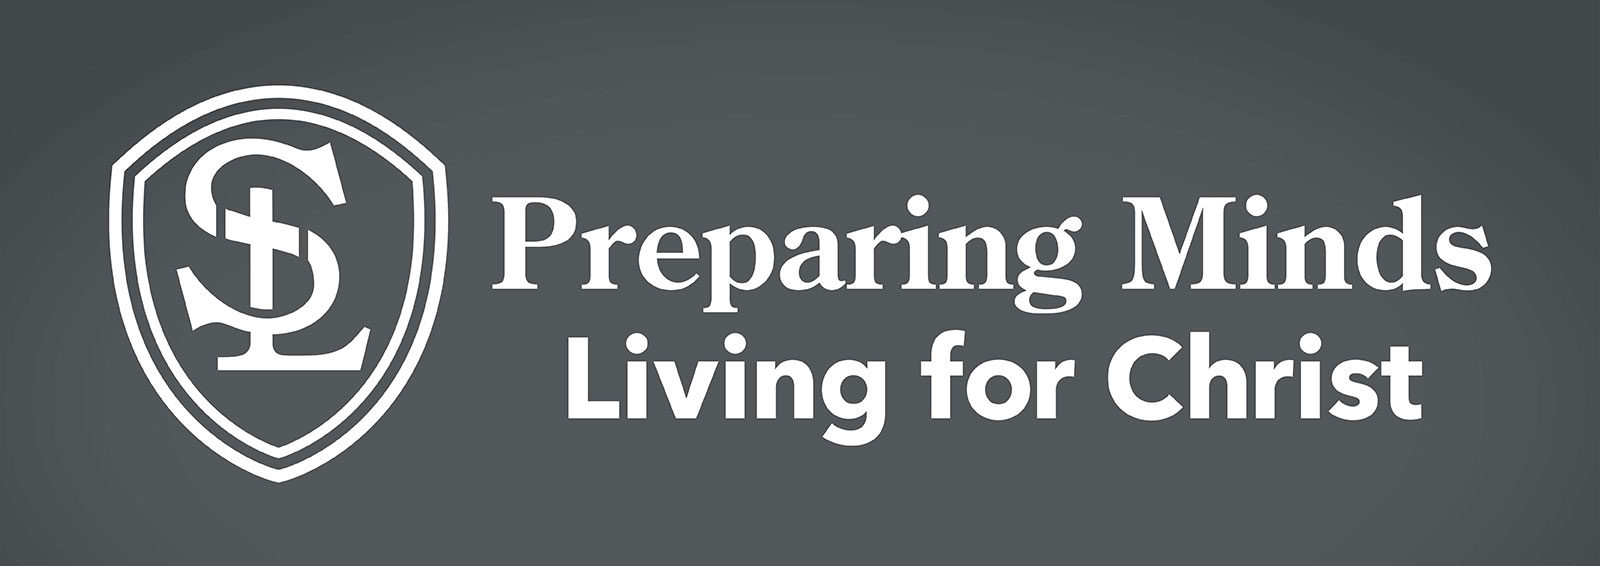 St. Luke School Motto: Preparing Minds. Living for Christ.